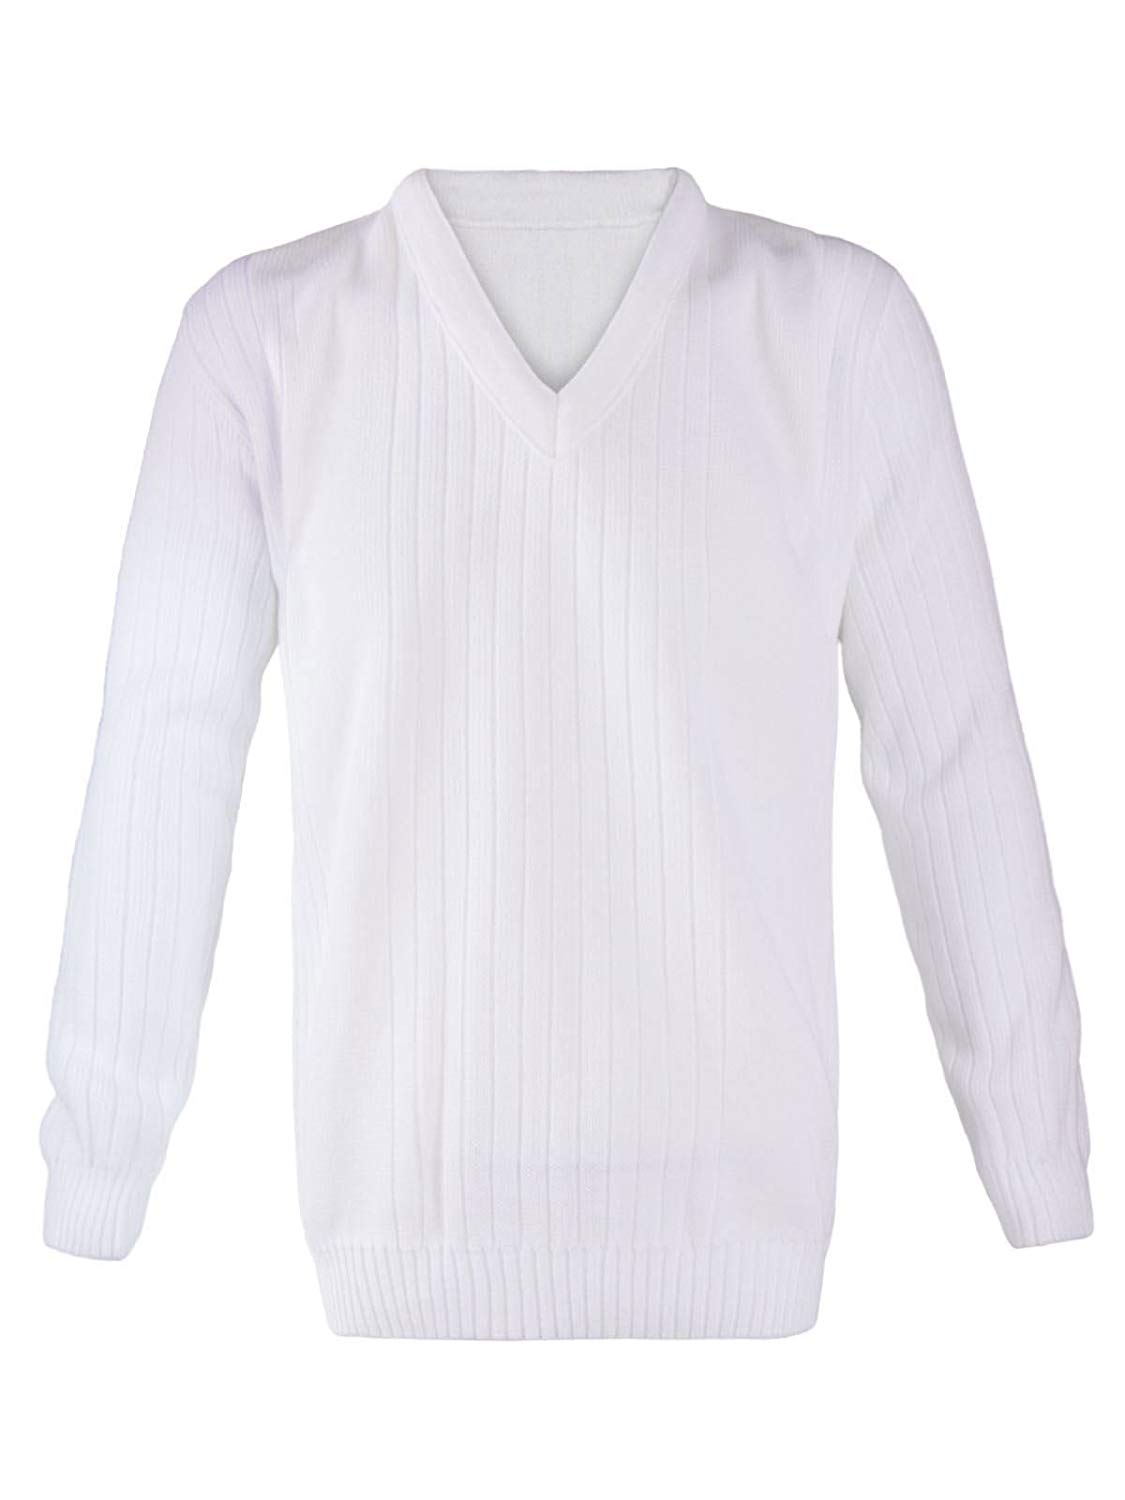 Rimi Hanger Mens Lawn Bowling Long Sleeve V Neck Knitted Jumper Adults Ribbed White Sweater S/5XL